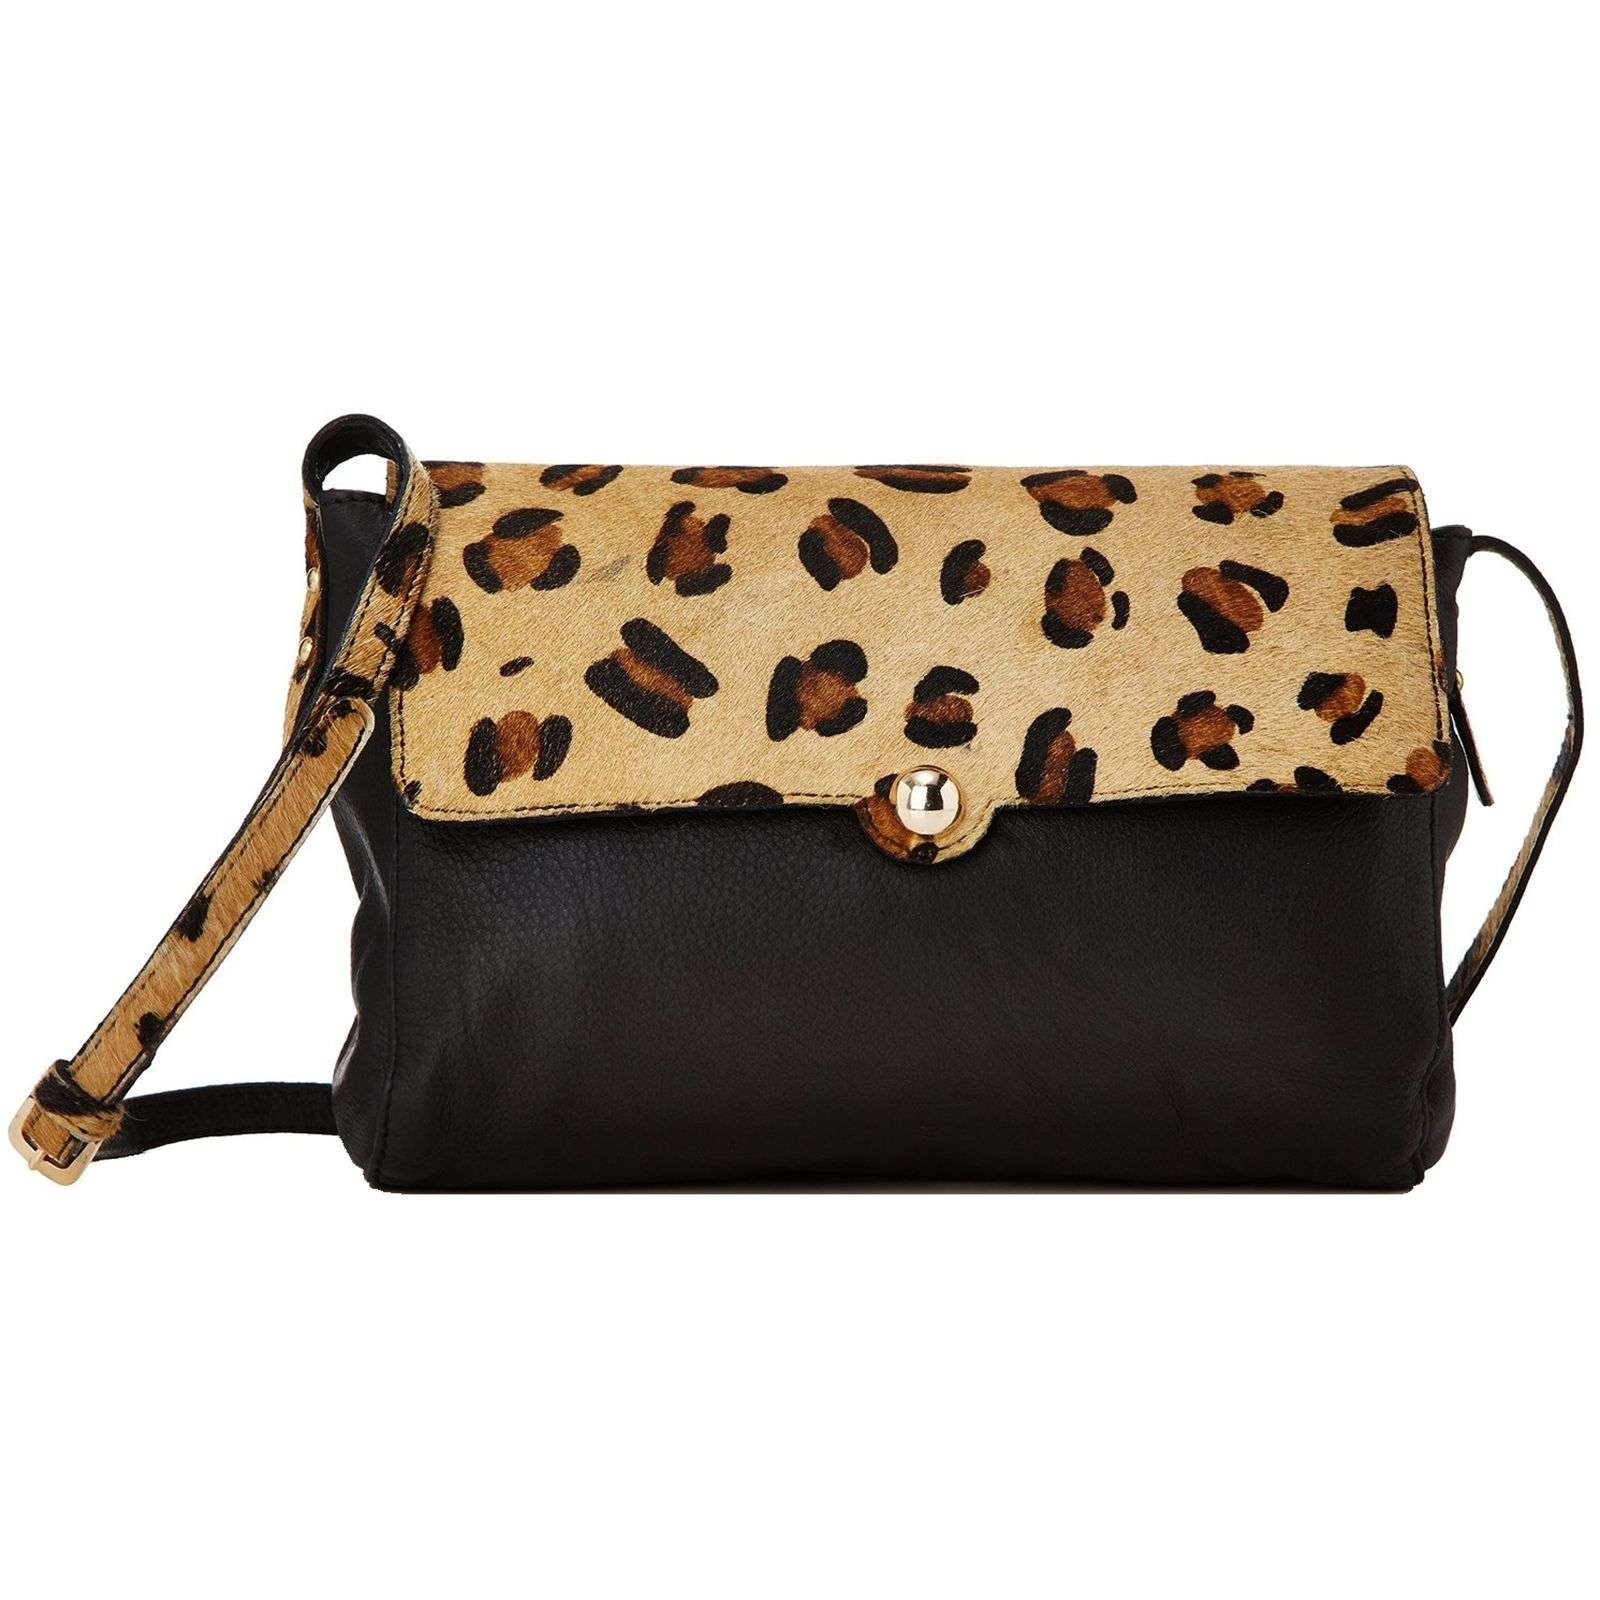 petite mendigote fr ne sac pochette leopard brandalley. Black Bedroom Furniture Sets. Home Design Ideas